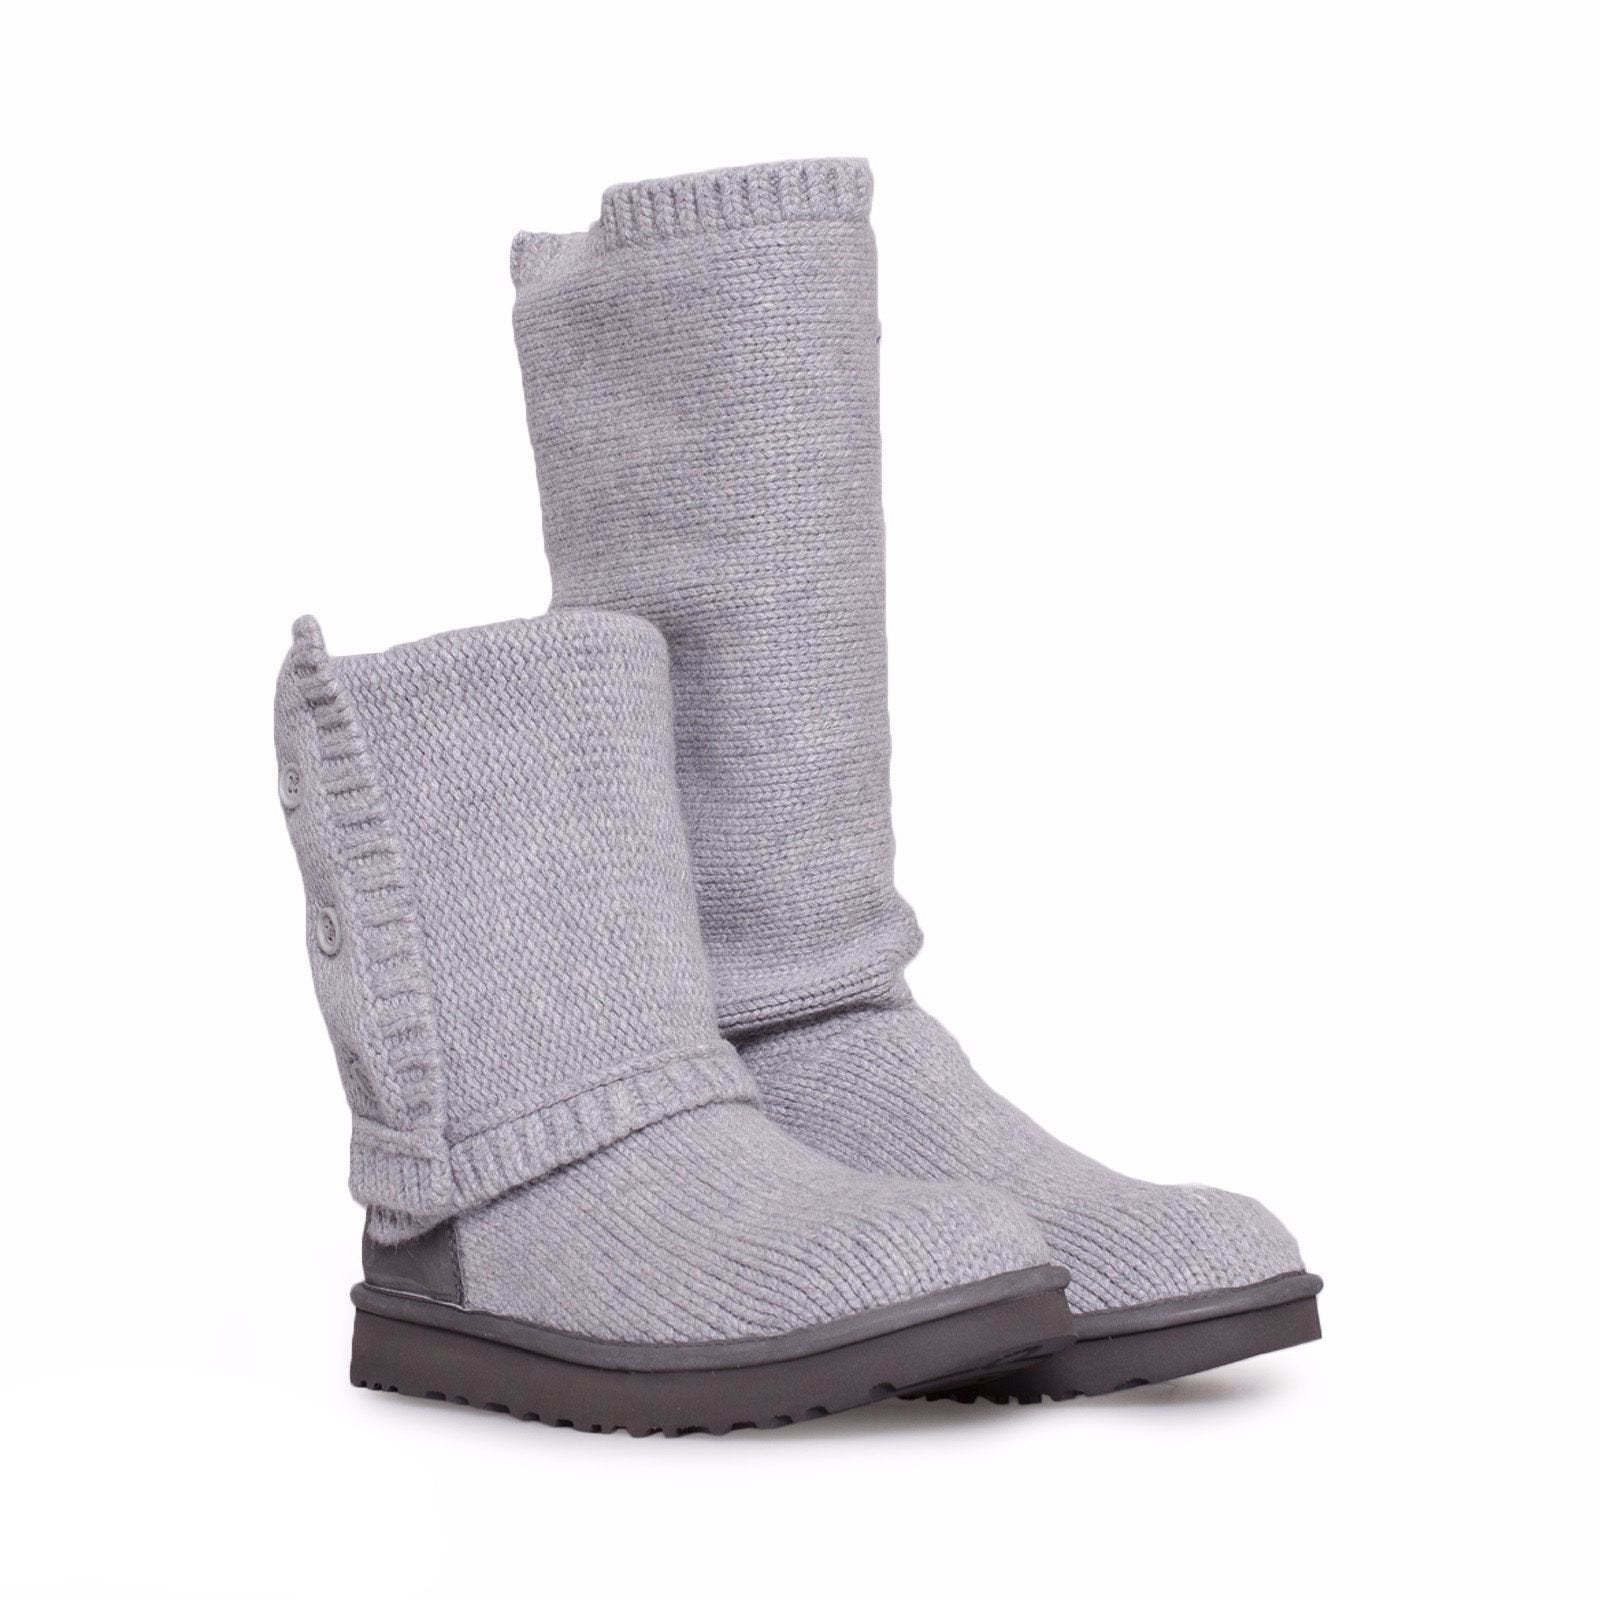 72a30889800 promo code for ugg classic cardy lila wood 9dc7c 66a10